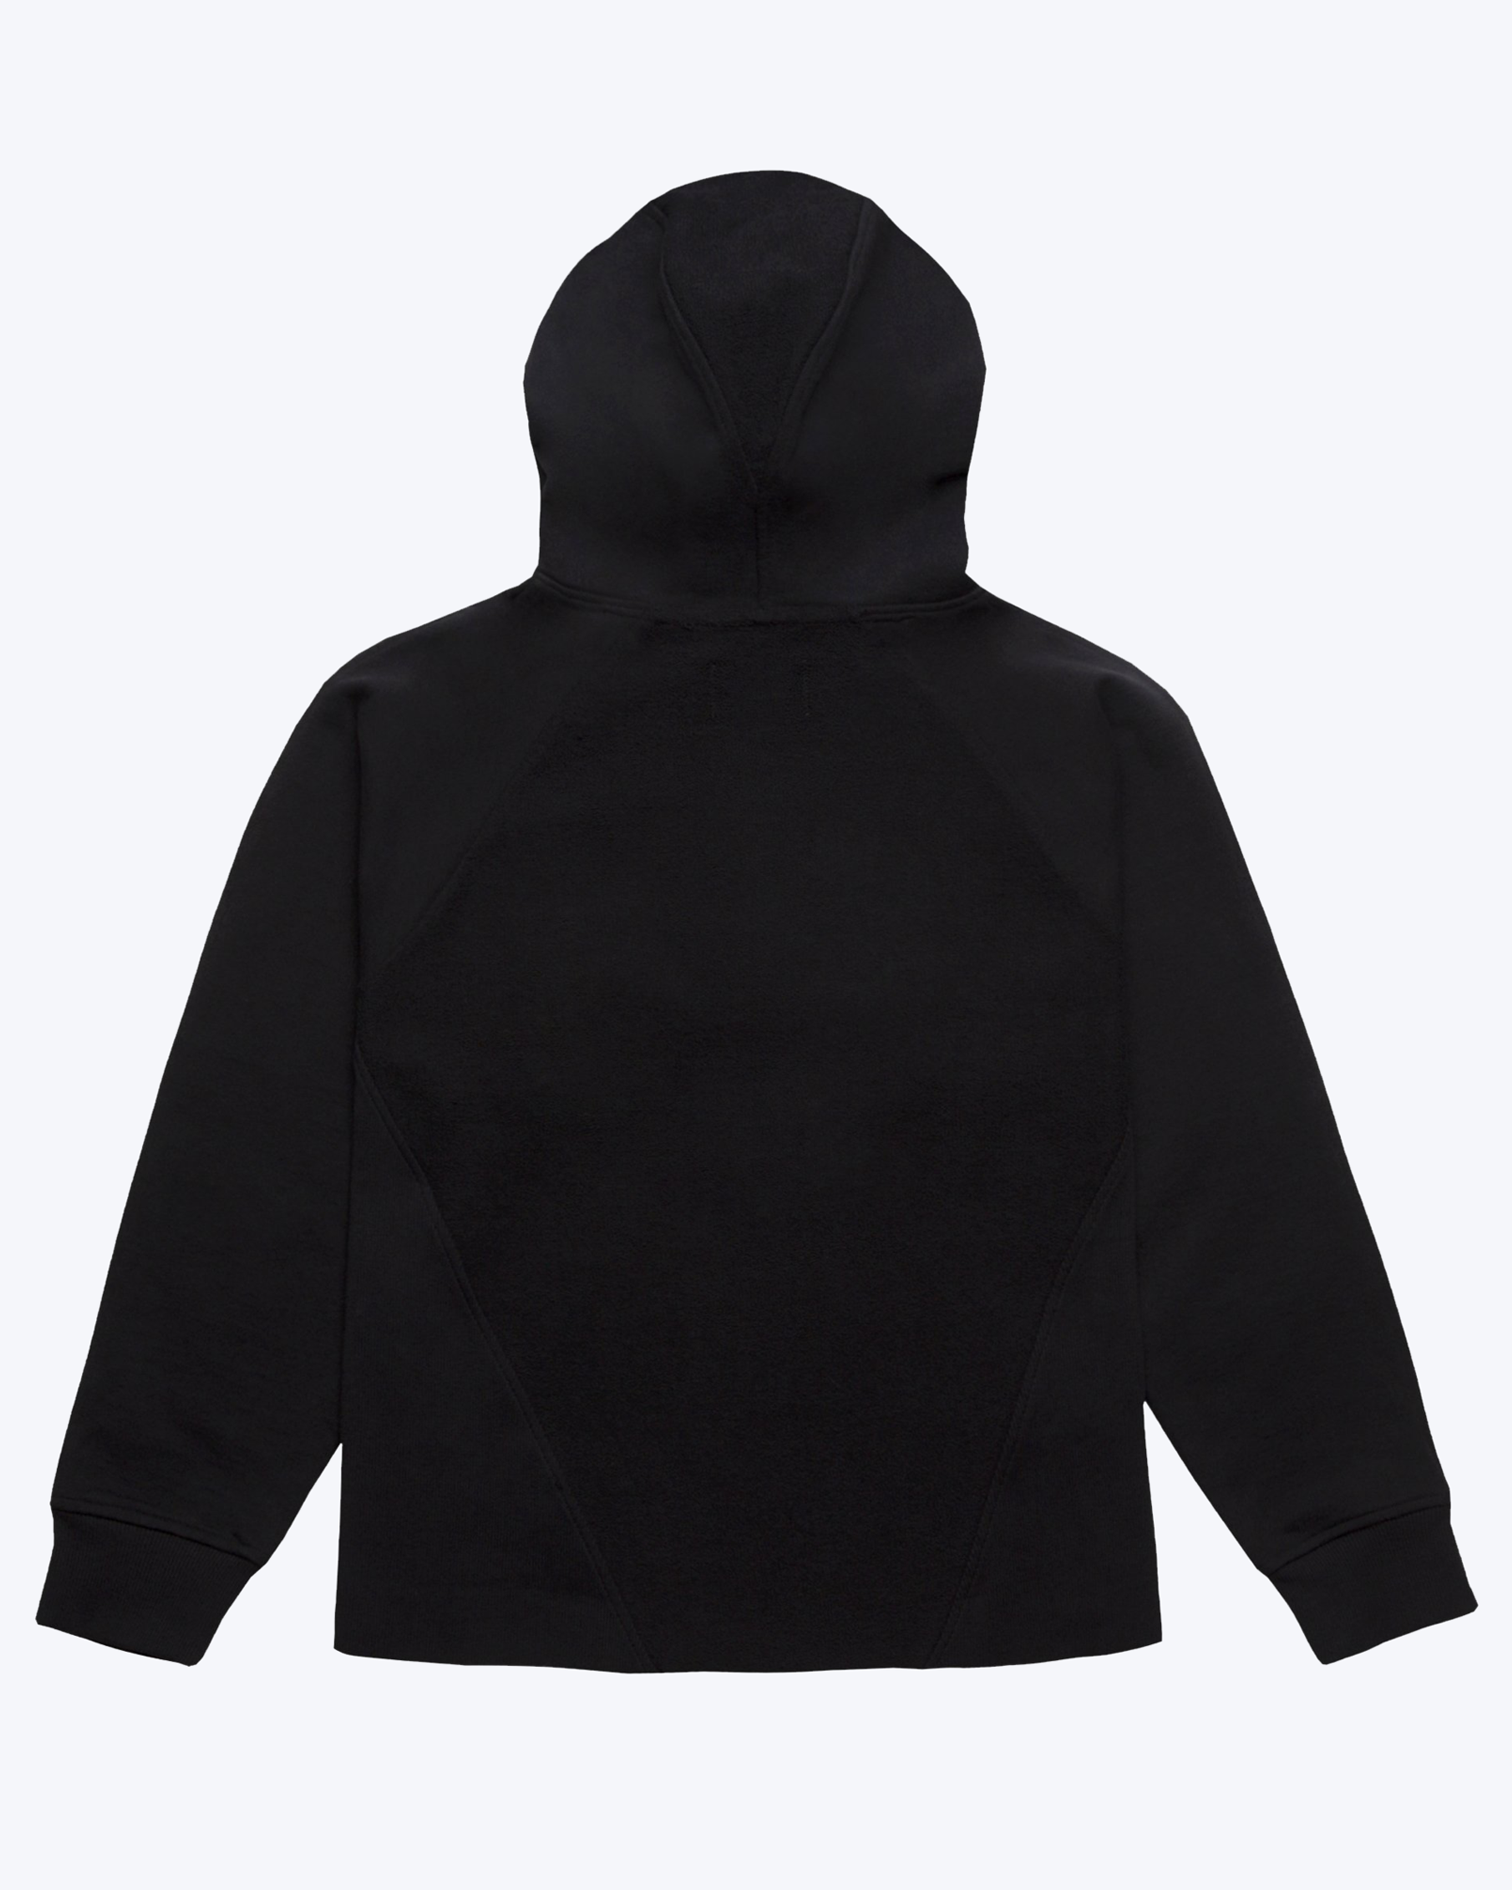 Weeping Eye Pullover Sweatshirt, Black